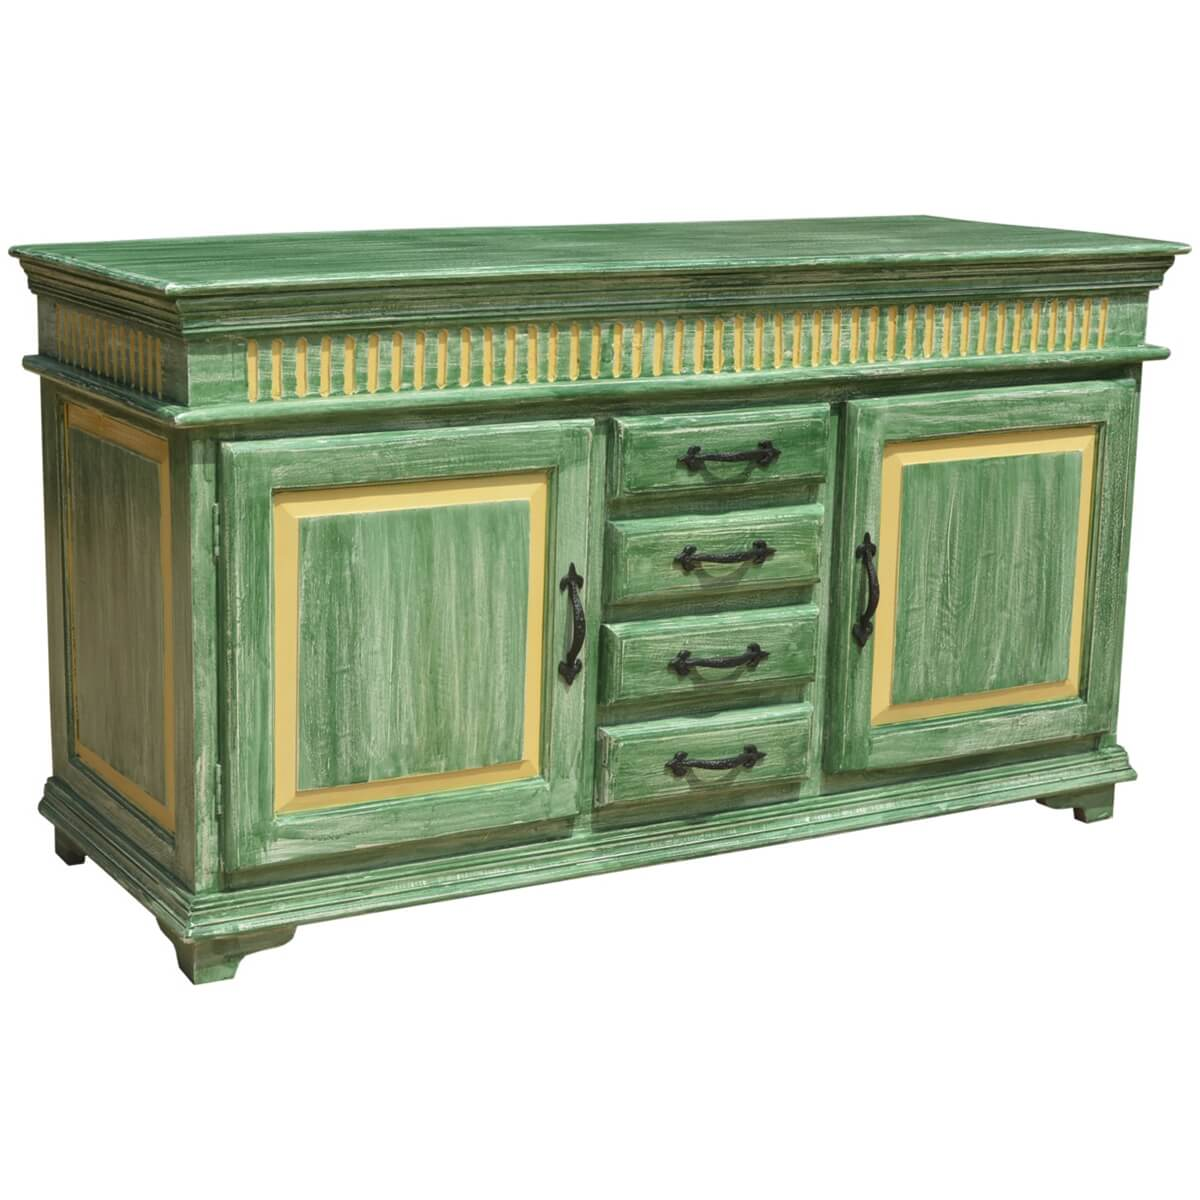 Oklahoma farmhouse distressed hand painted 4 drawer sideboard for Painted buffet sideboard